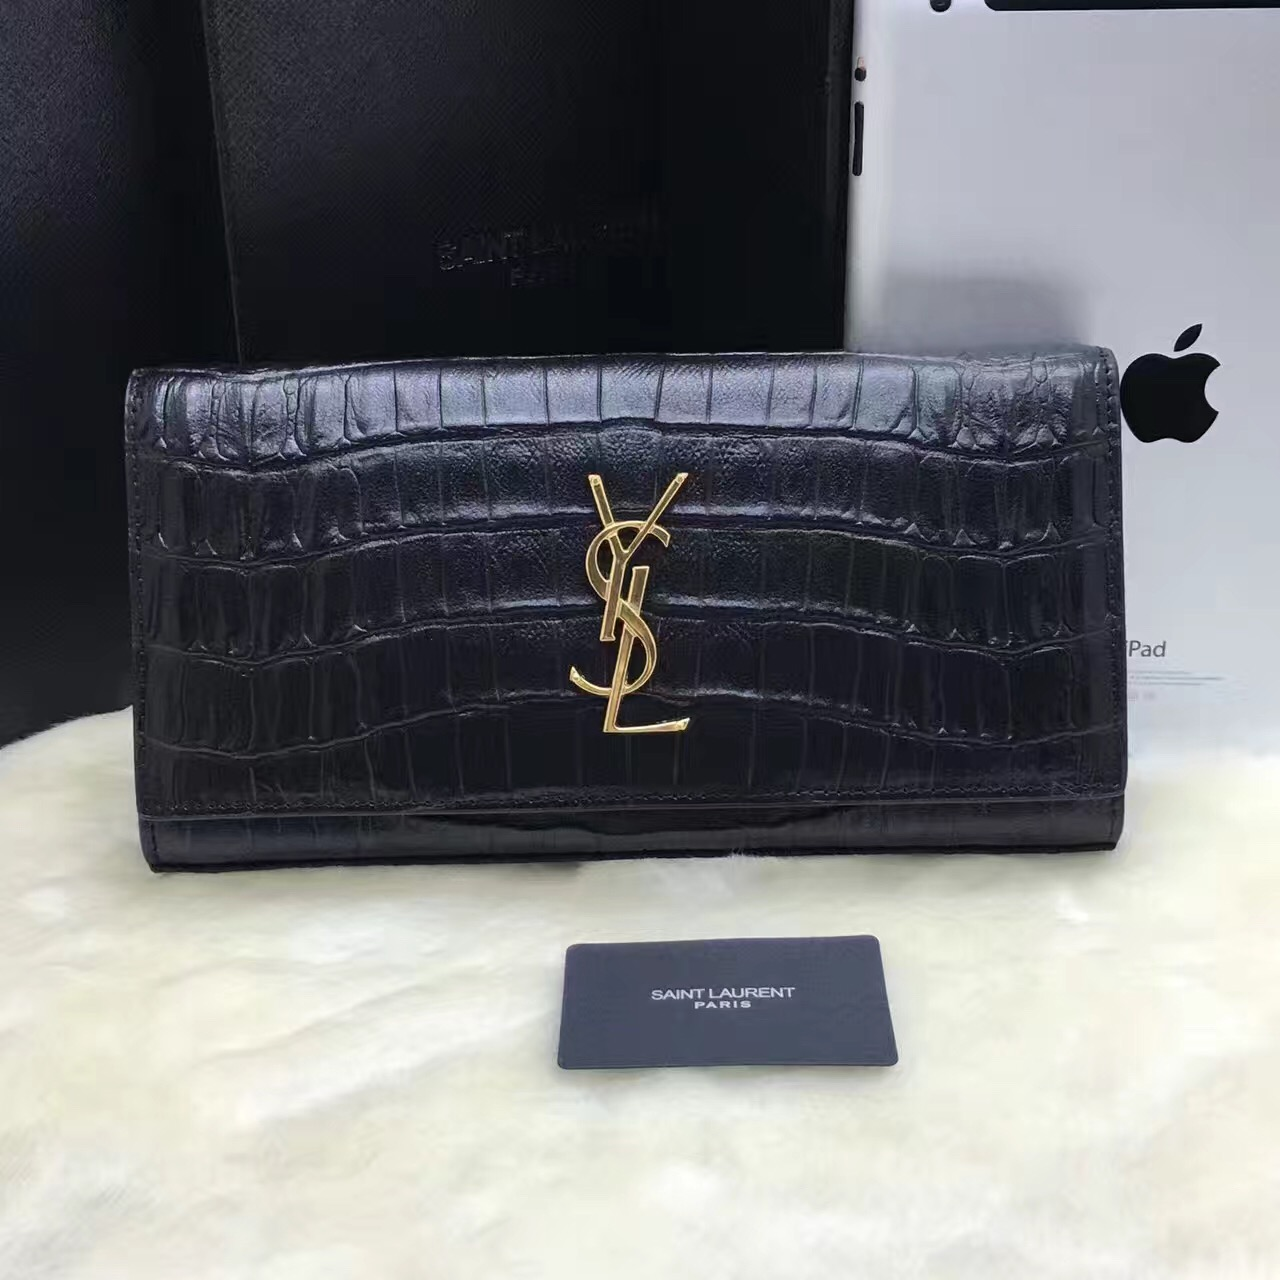 YSL Clutch 27cm Croco Leather Black Gold